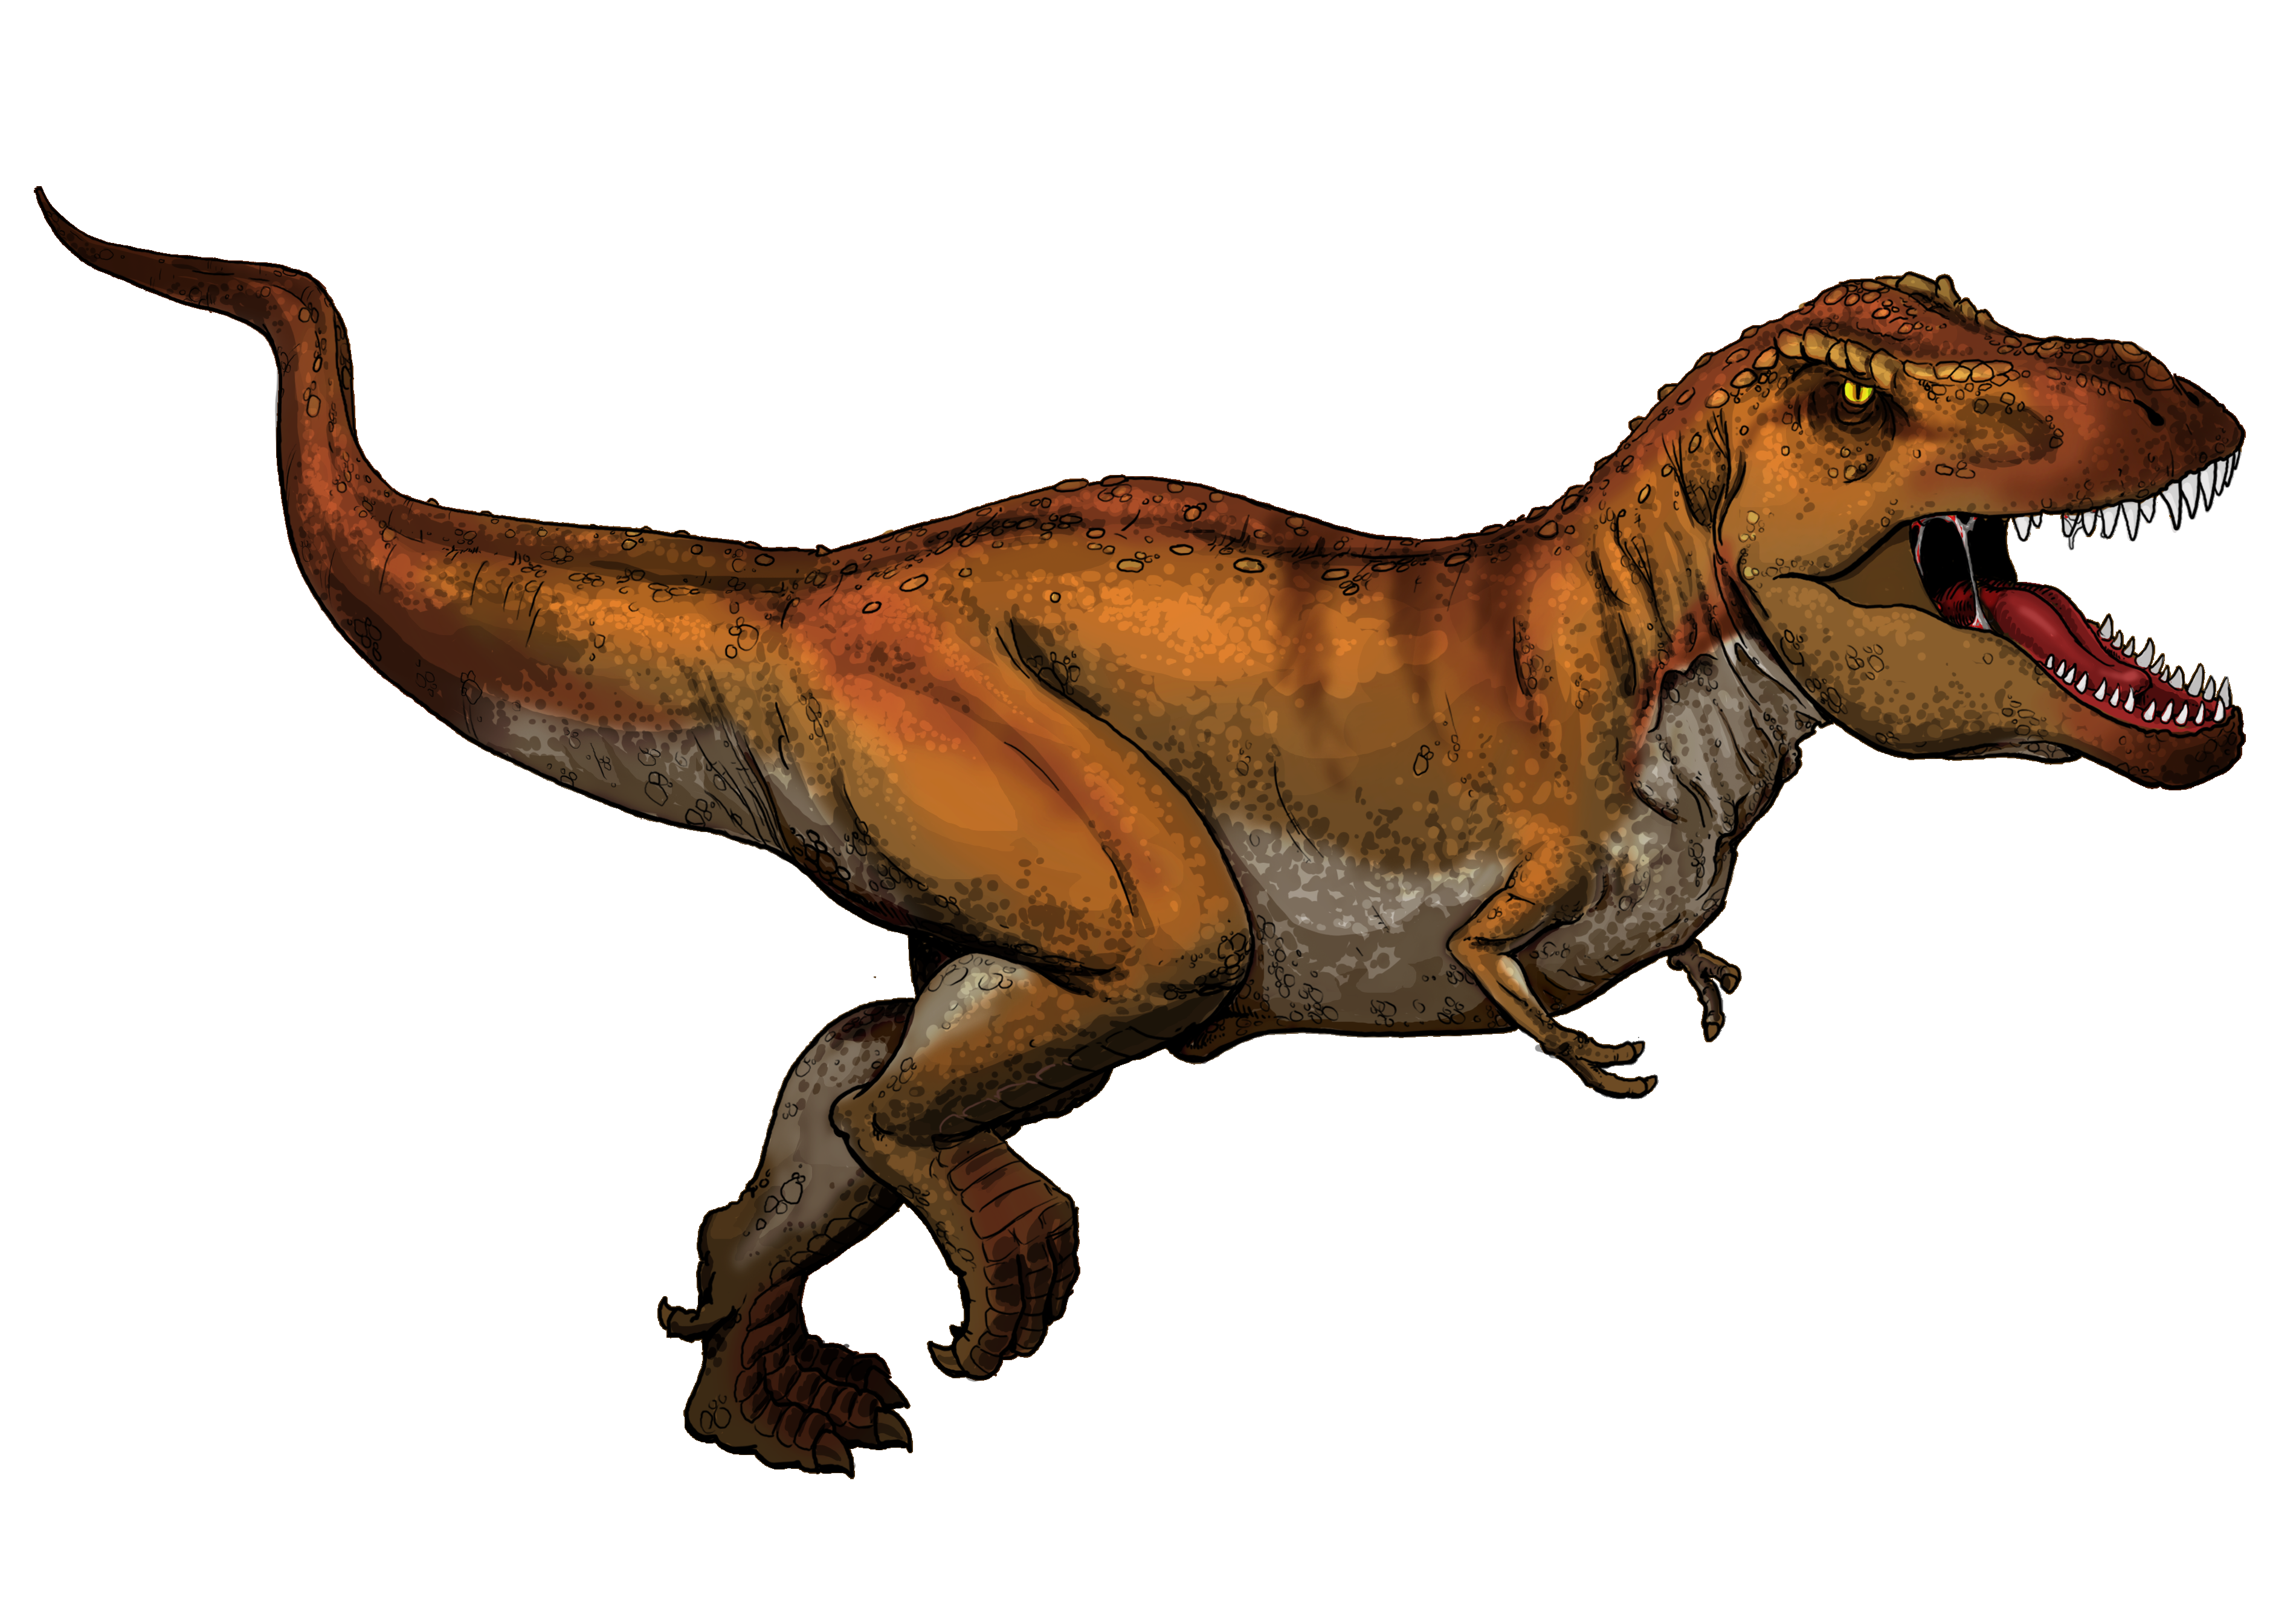 File:Tyrannosaurus Rex colored.png - T Rex Dinosaurs PNG